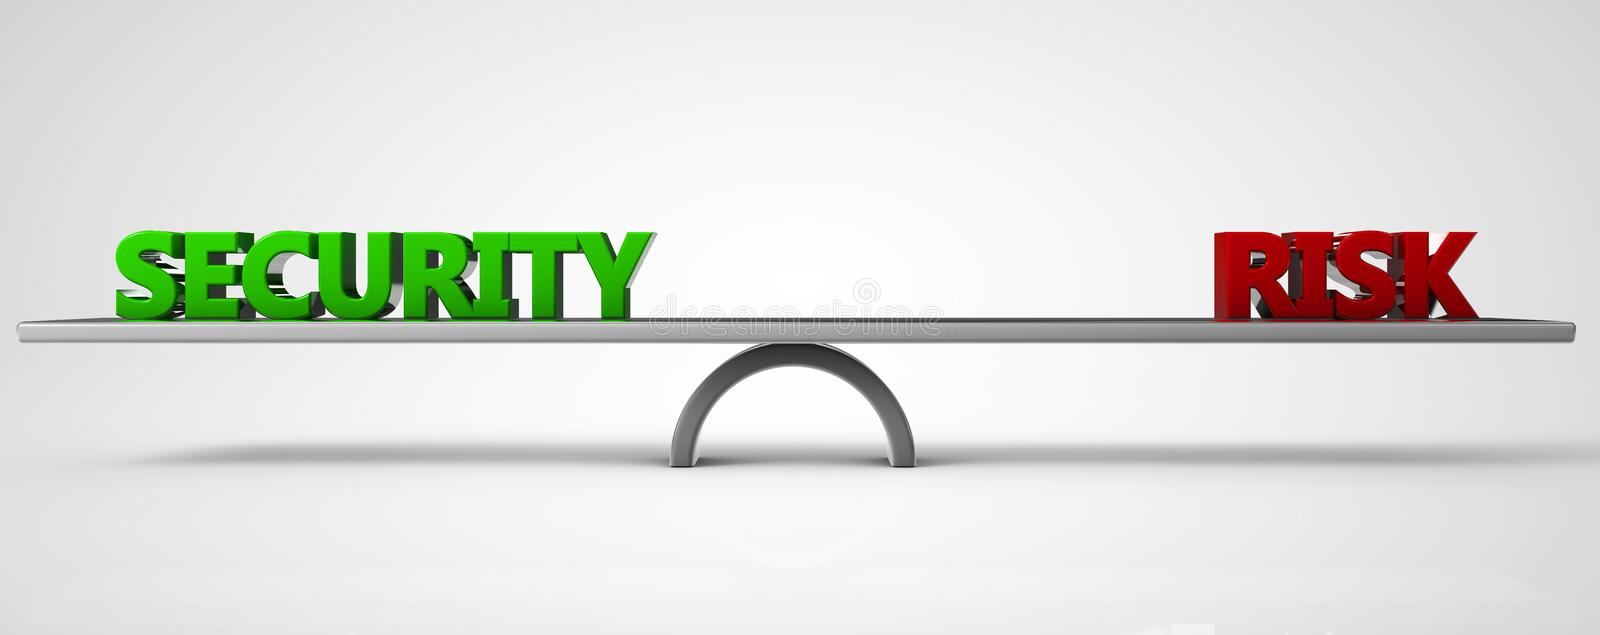 security risk balance concept stock illustration